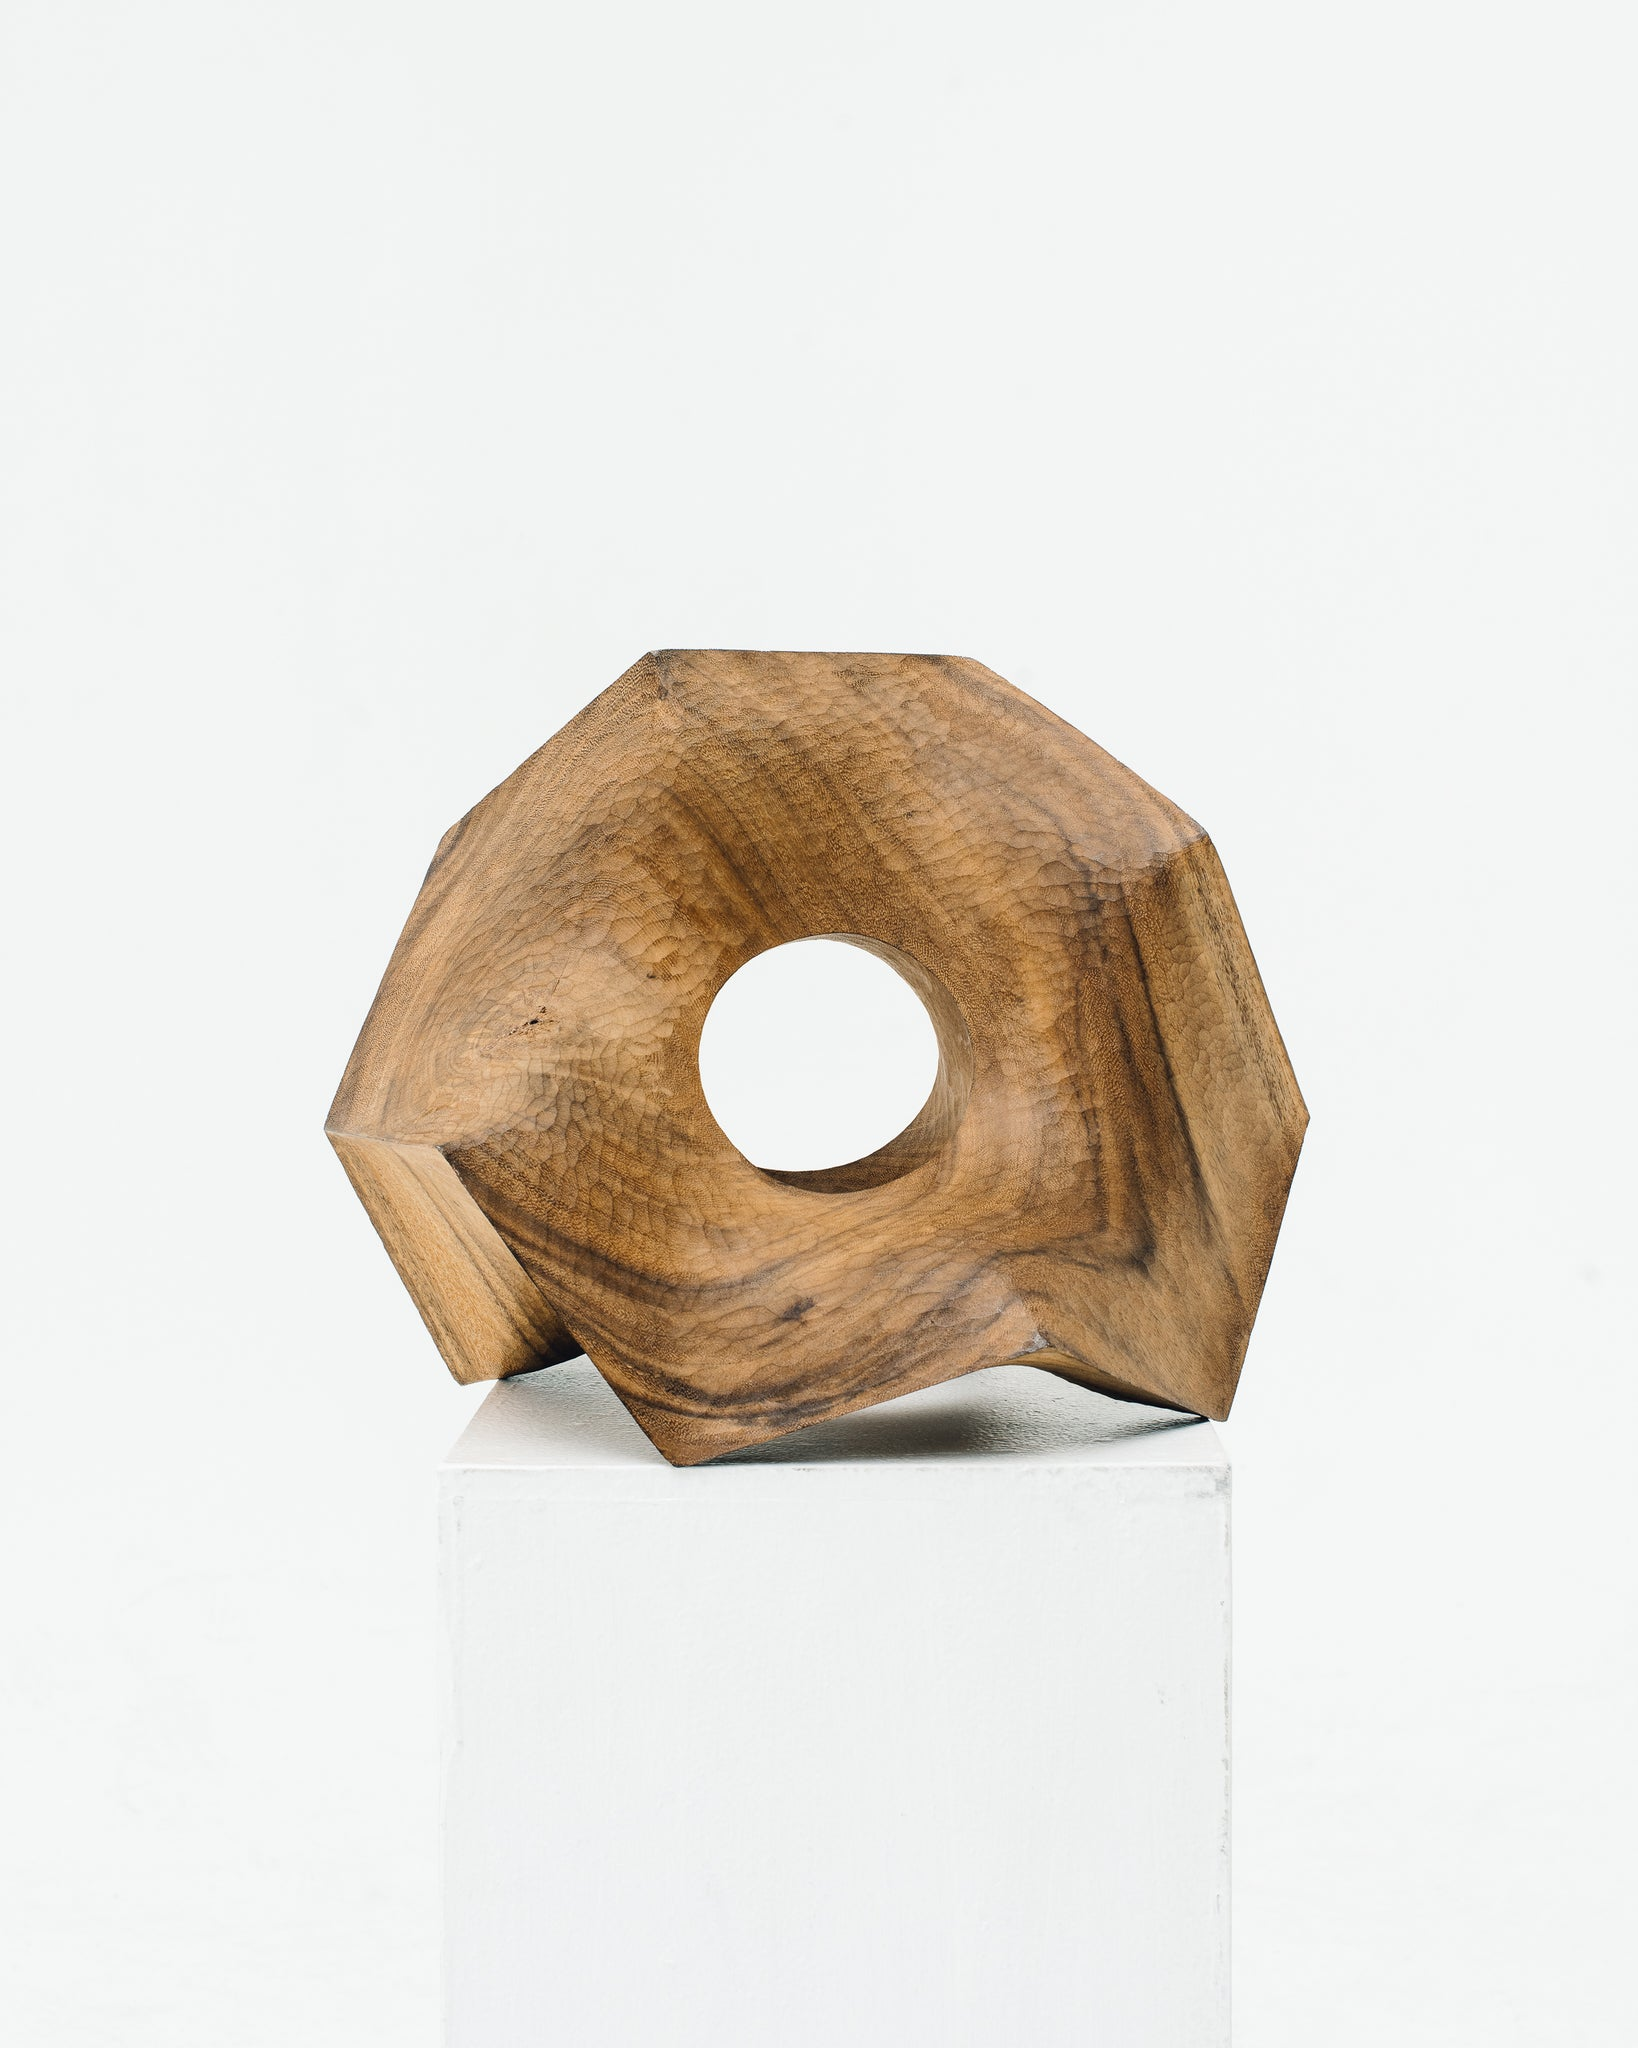 Aleph Geddis Wood Sculpture AG-1017